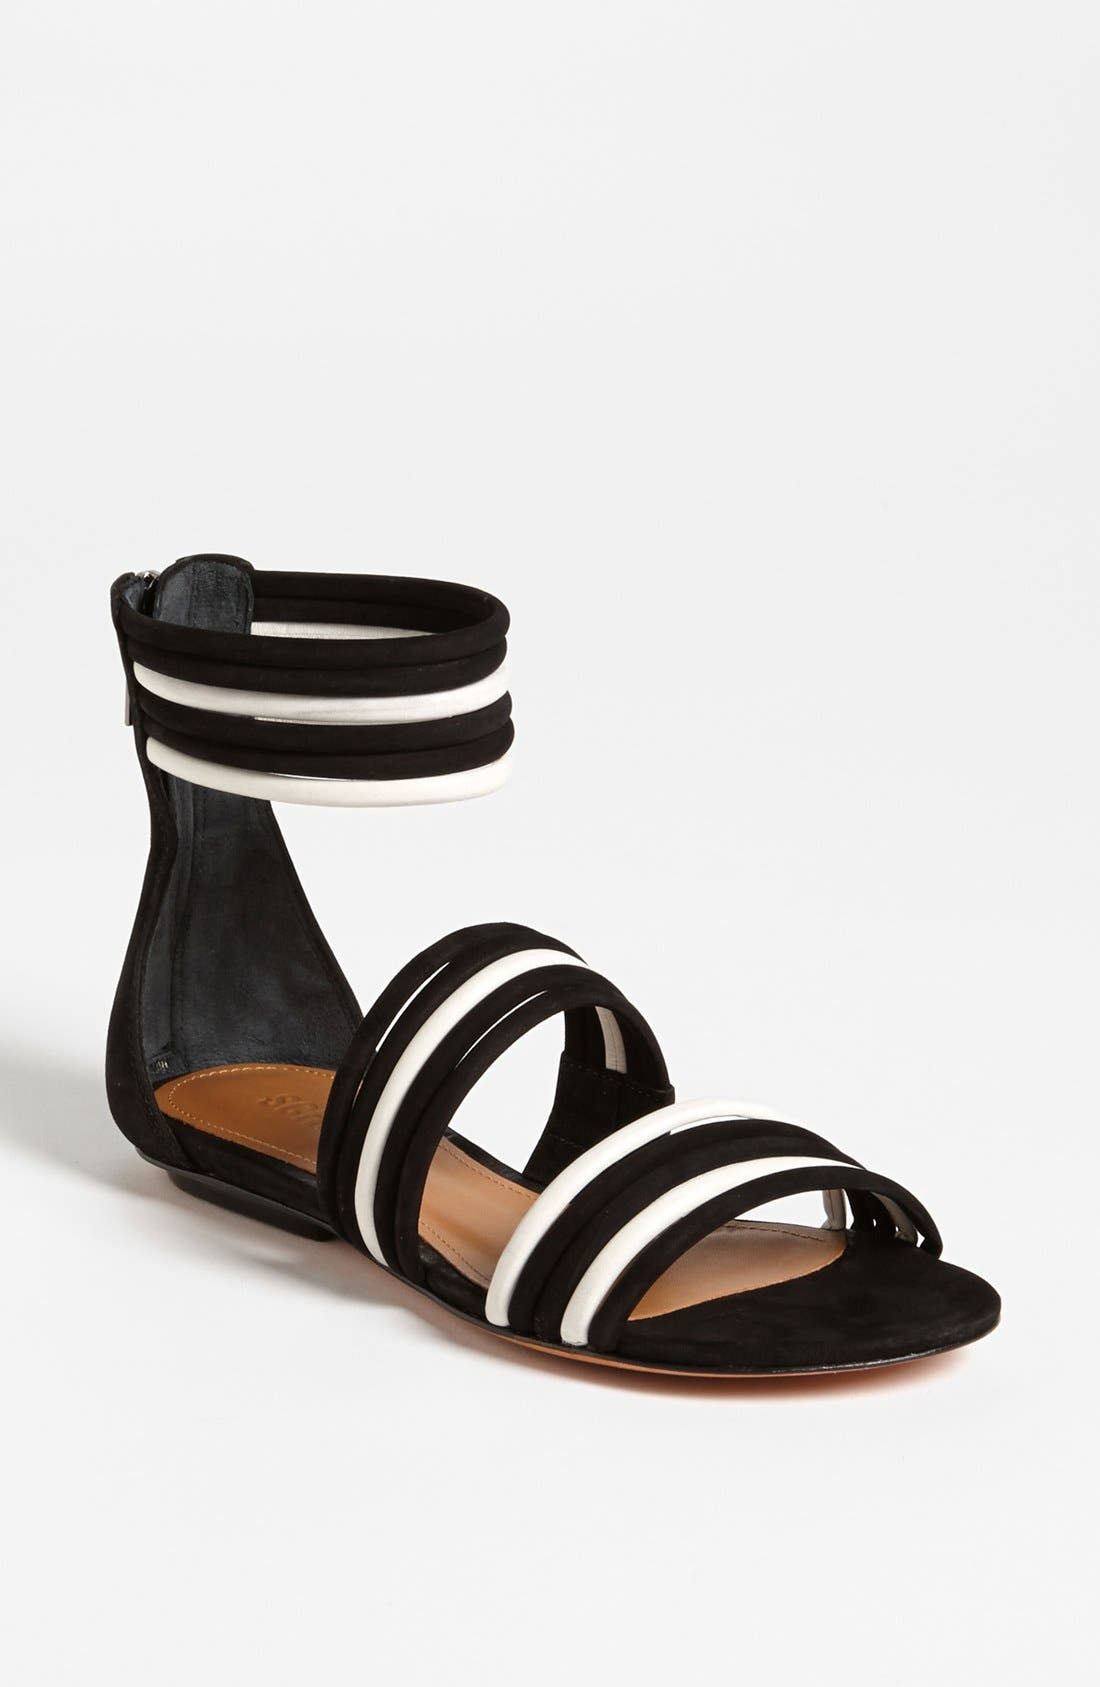 Alternate Image 1 Selected - Schutz 'Chanelle' Sandal